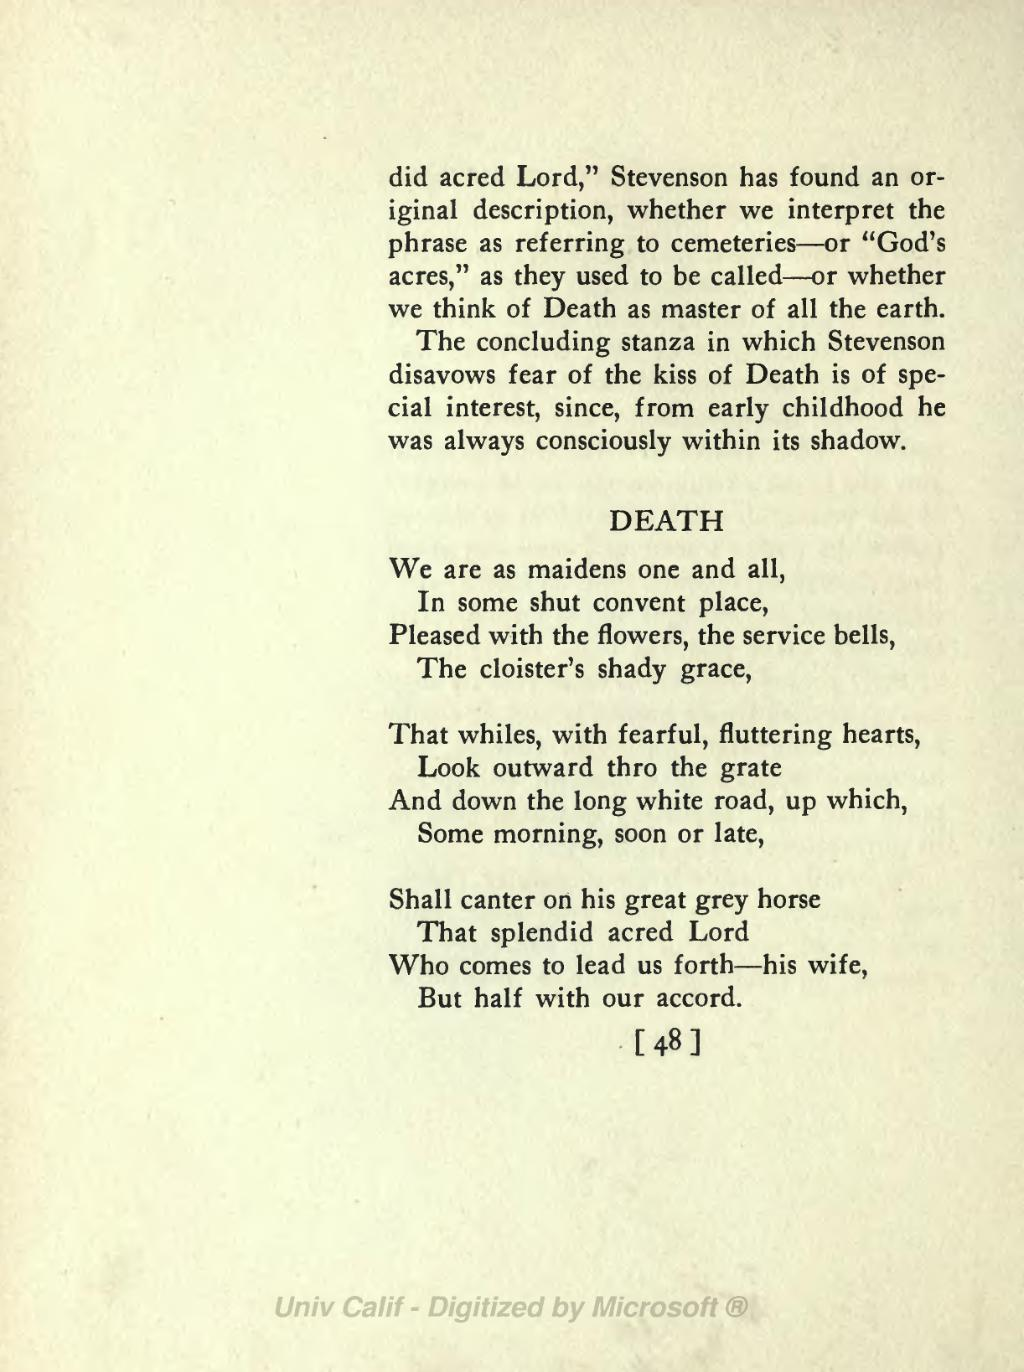 concluding stanza of a poem